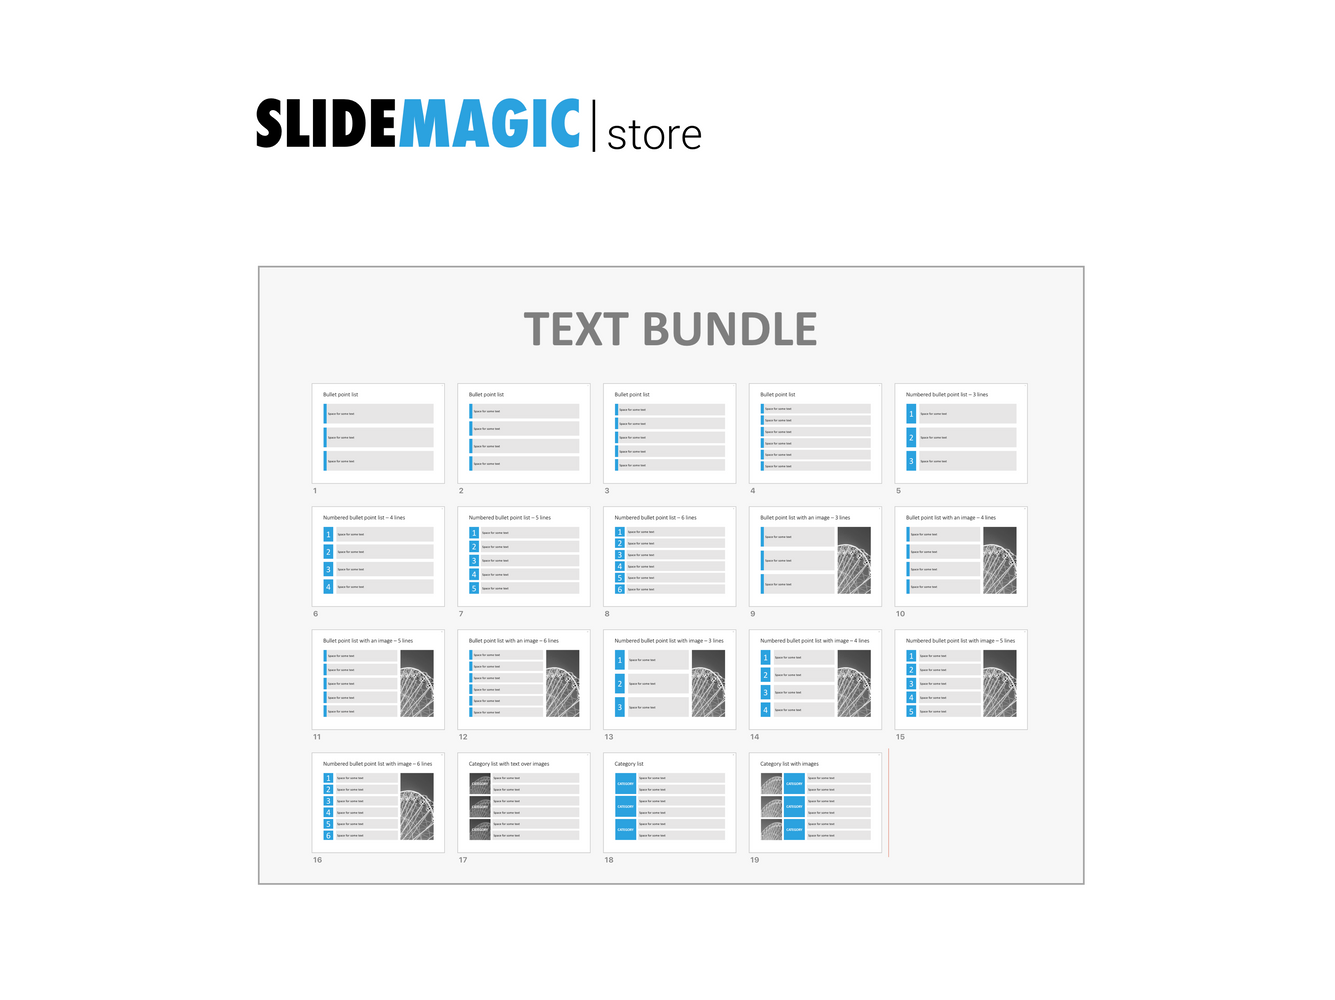 Text bundle